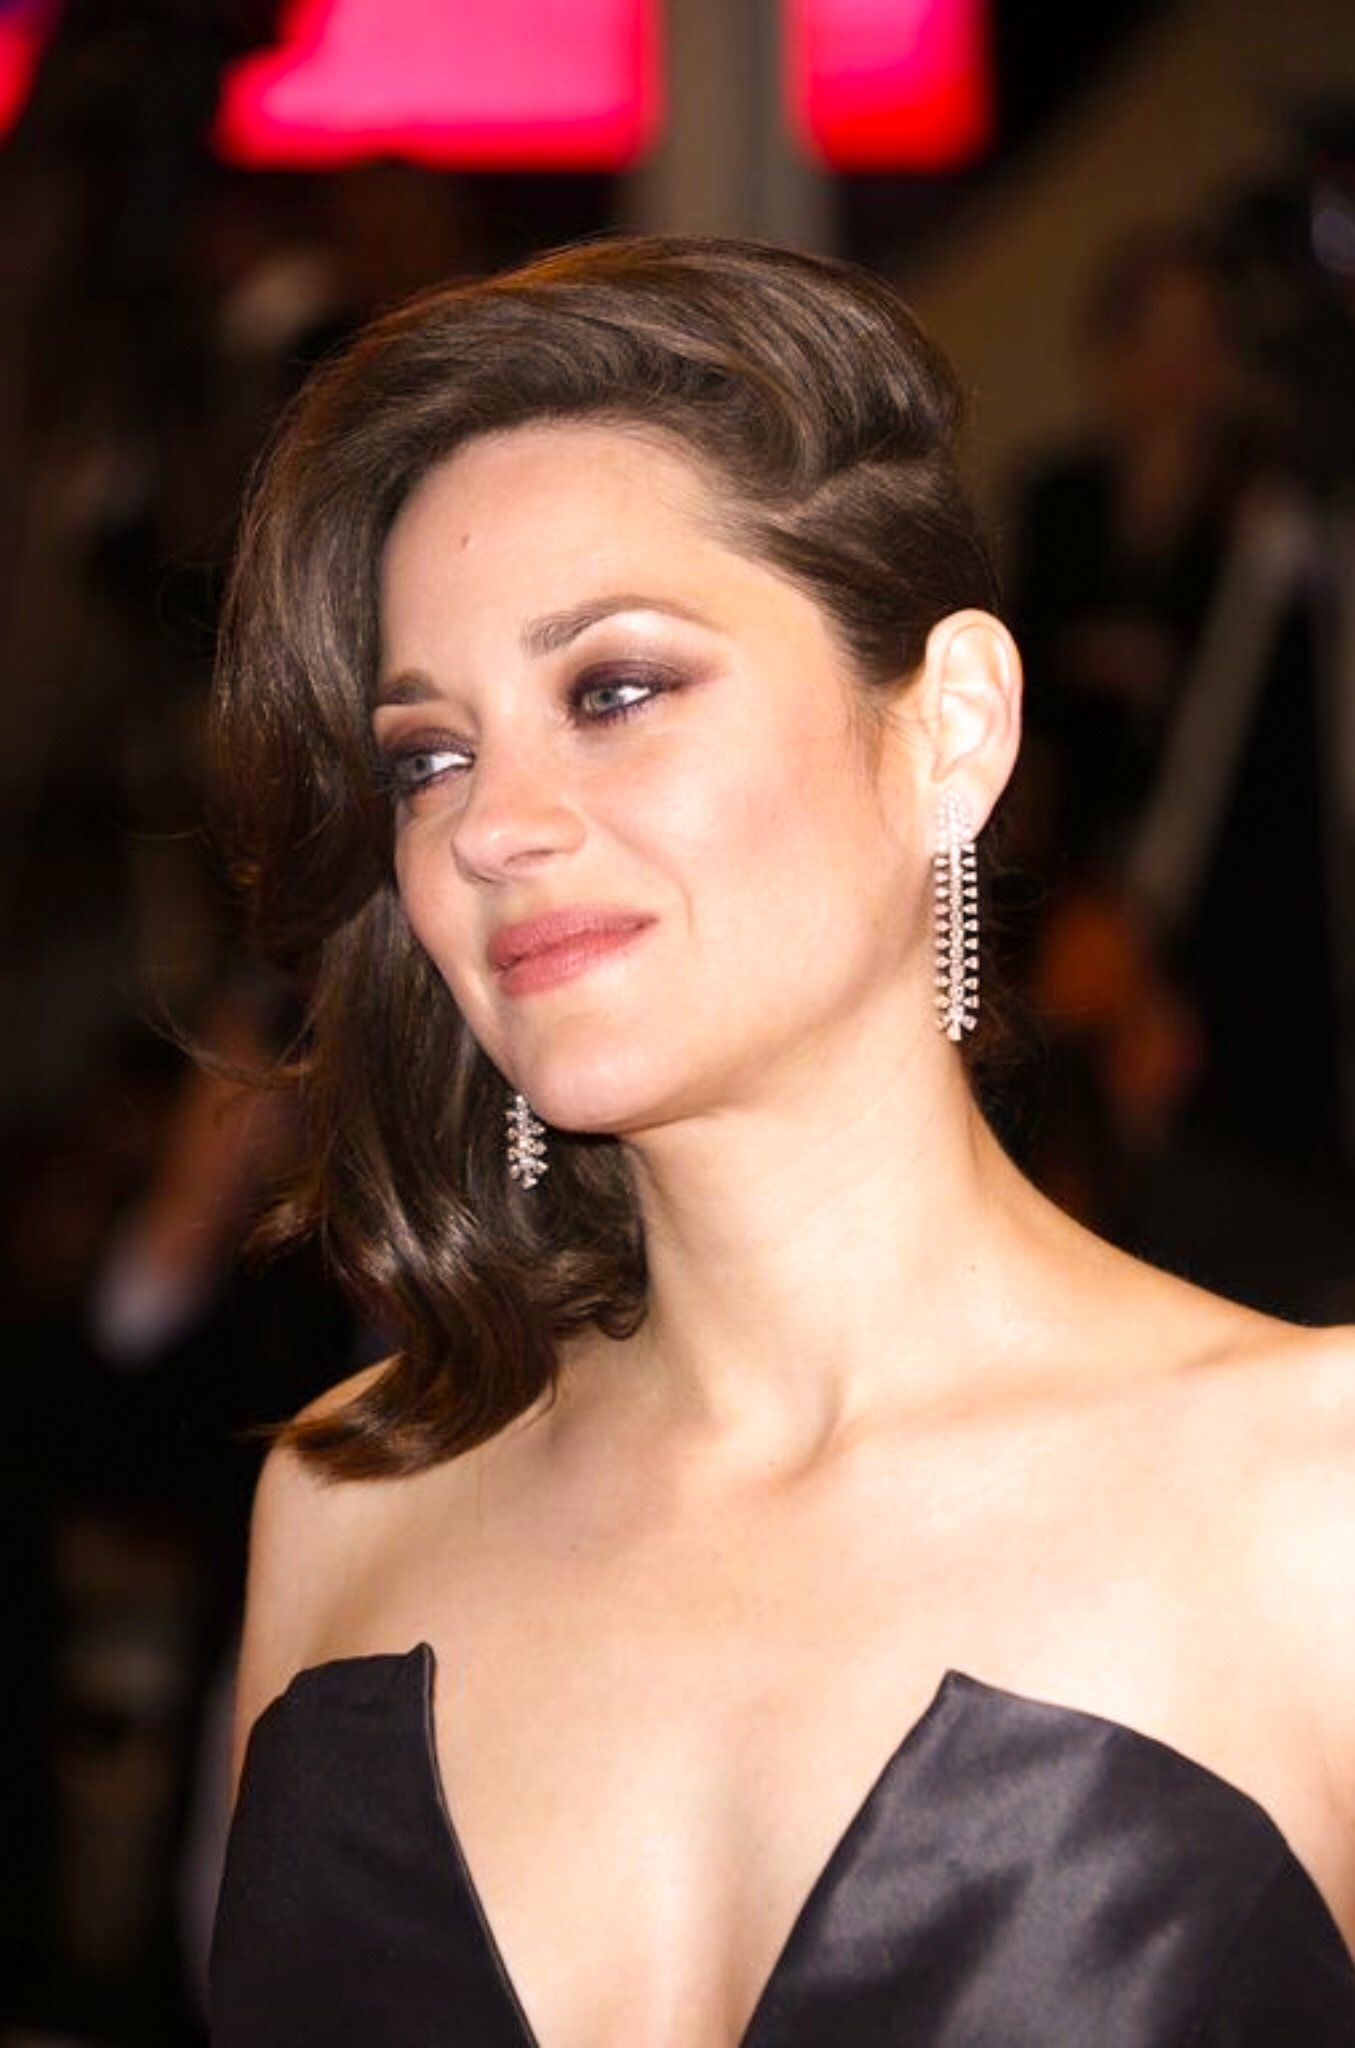 TheFappening Marion Cotillard nudes (99 photo), Topless, Fappening, Feet, cleavage 2015